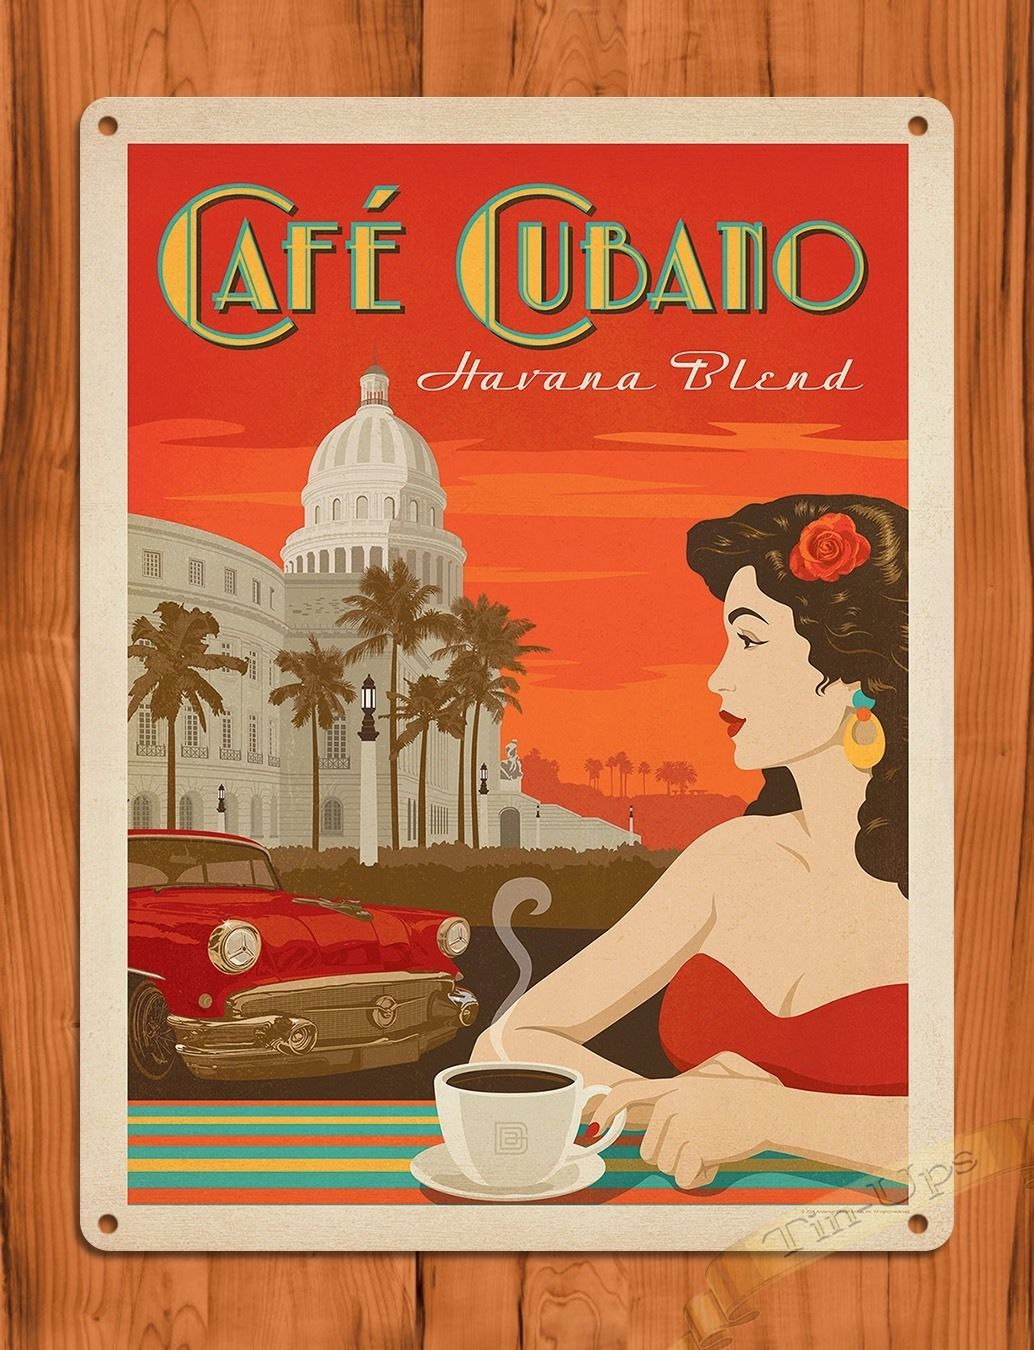 vintage posters for kitchen ikea sets tin sign quotcafe cubano quot havana blend coffee